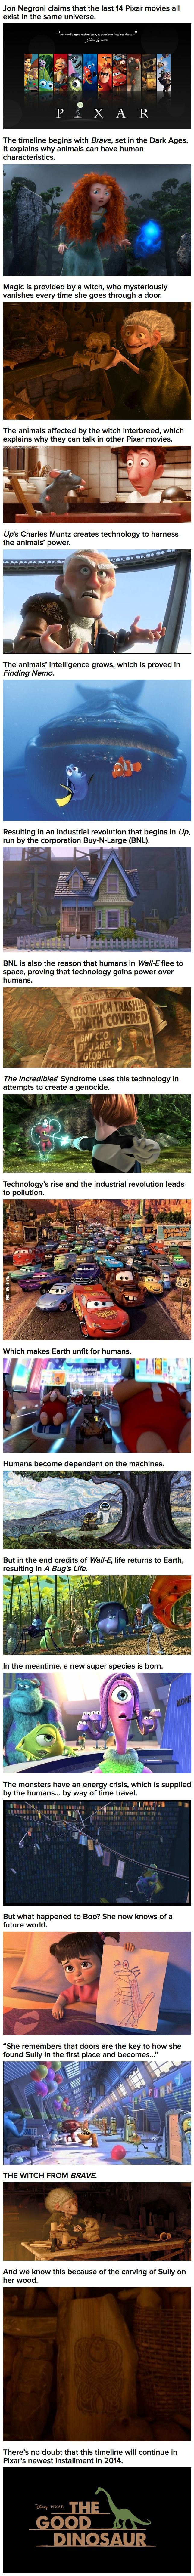 Pixar movies explained - this will blow your mind!